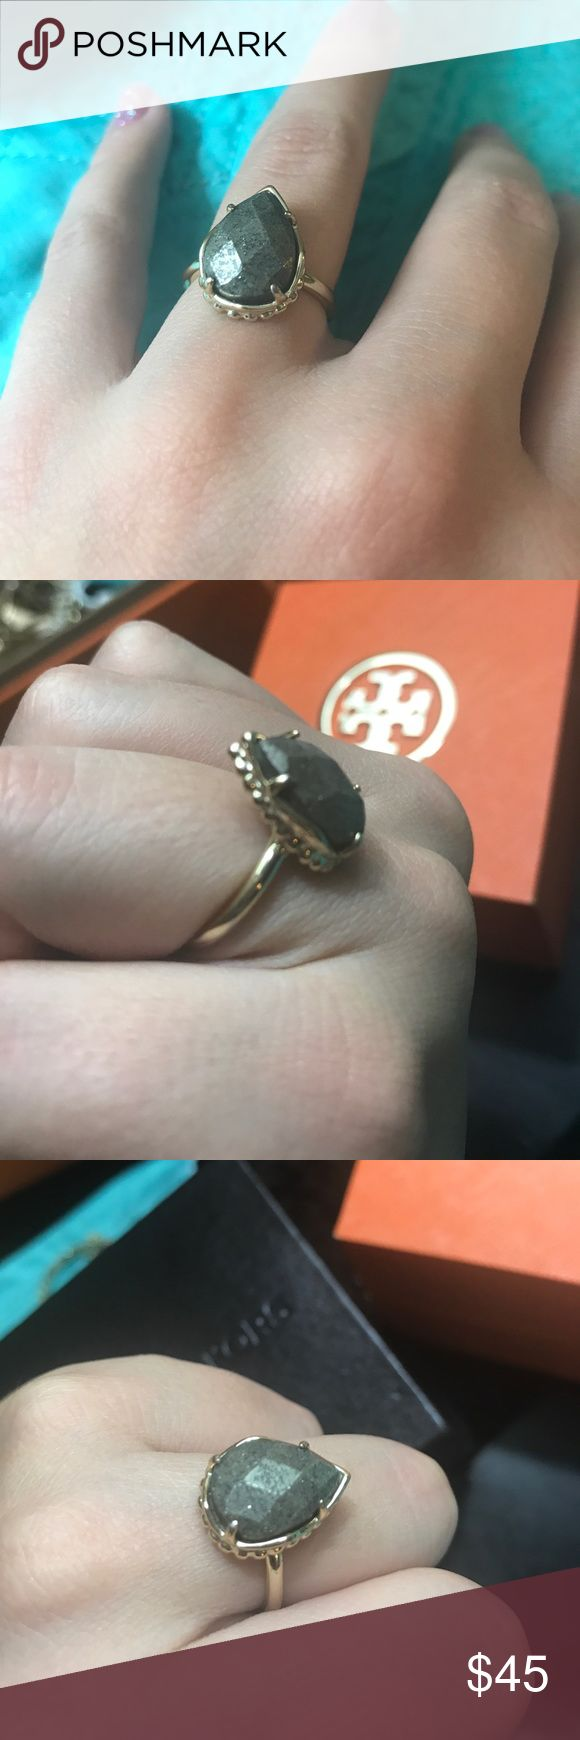 Gold Kendra Scott ring I believe it's a size 6 1/2 or 7. I might have worn this ring once. Bundle with other items for a discount. I have Tory Burch, james Avery and Michael Kors in my closet. Kendra Scott Jewelry Rings